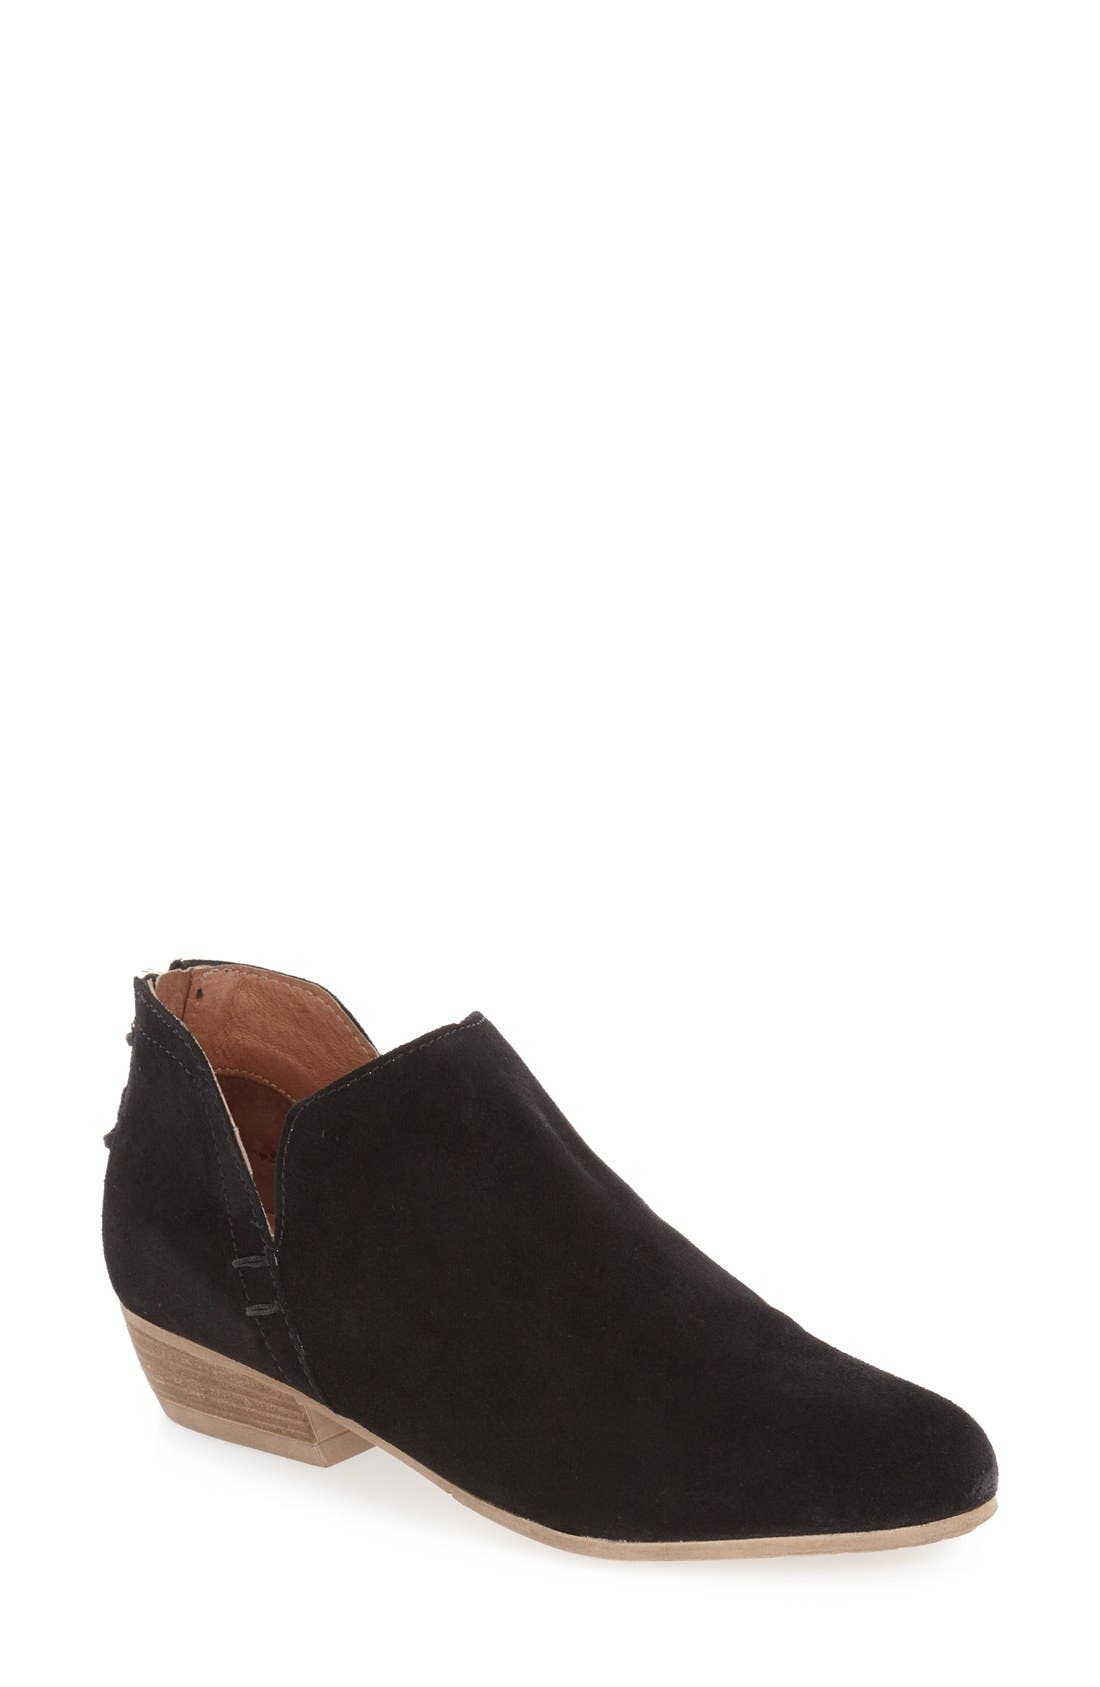 Main Image - Kenneth Cole New York 'Cooper' Suede Bootie (Women)